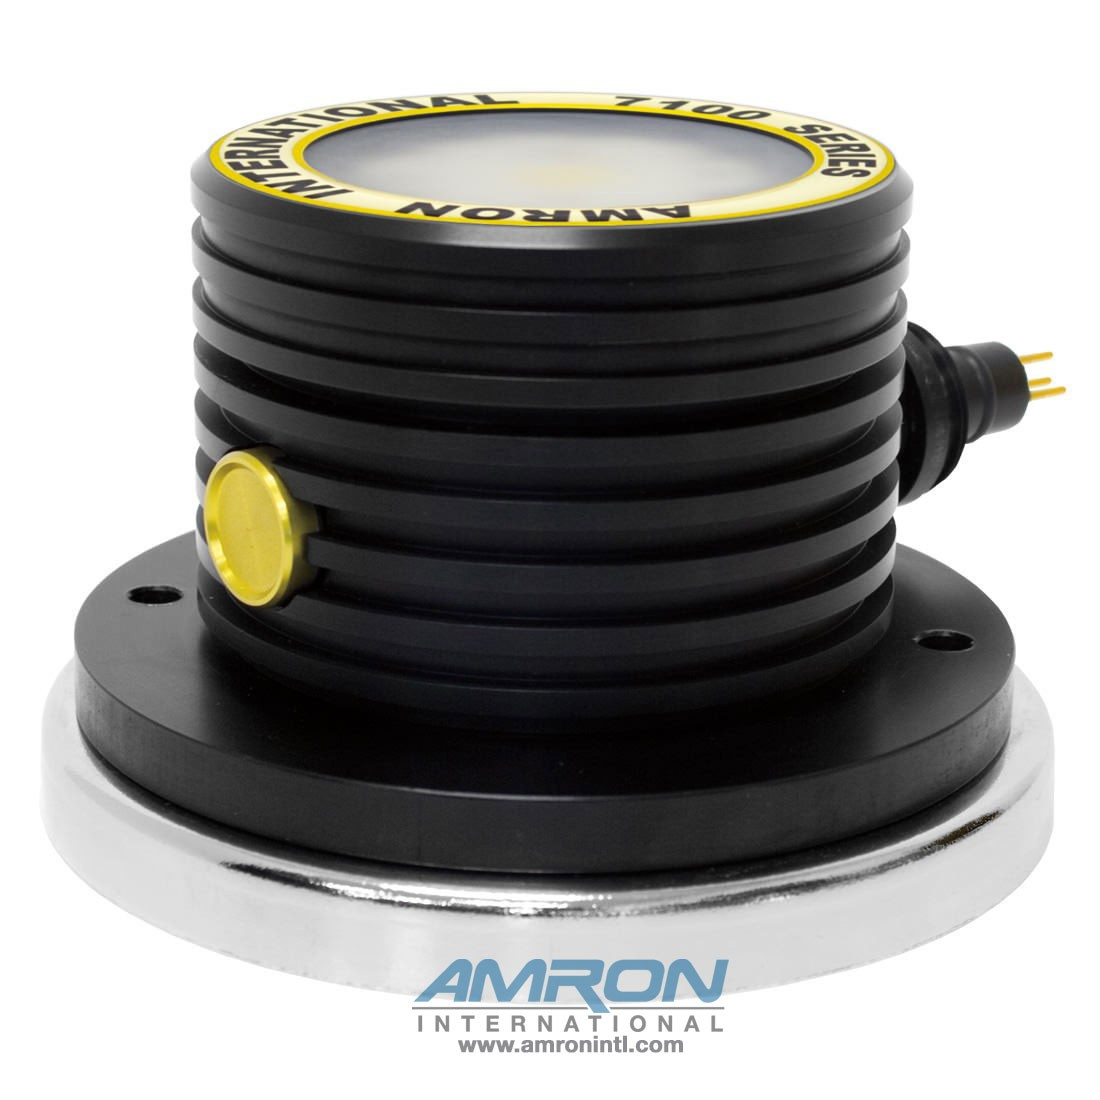 Amron International 7100 LED Hyperbaric Chamber Light with Frosted Lens and Magnetic Base